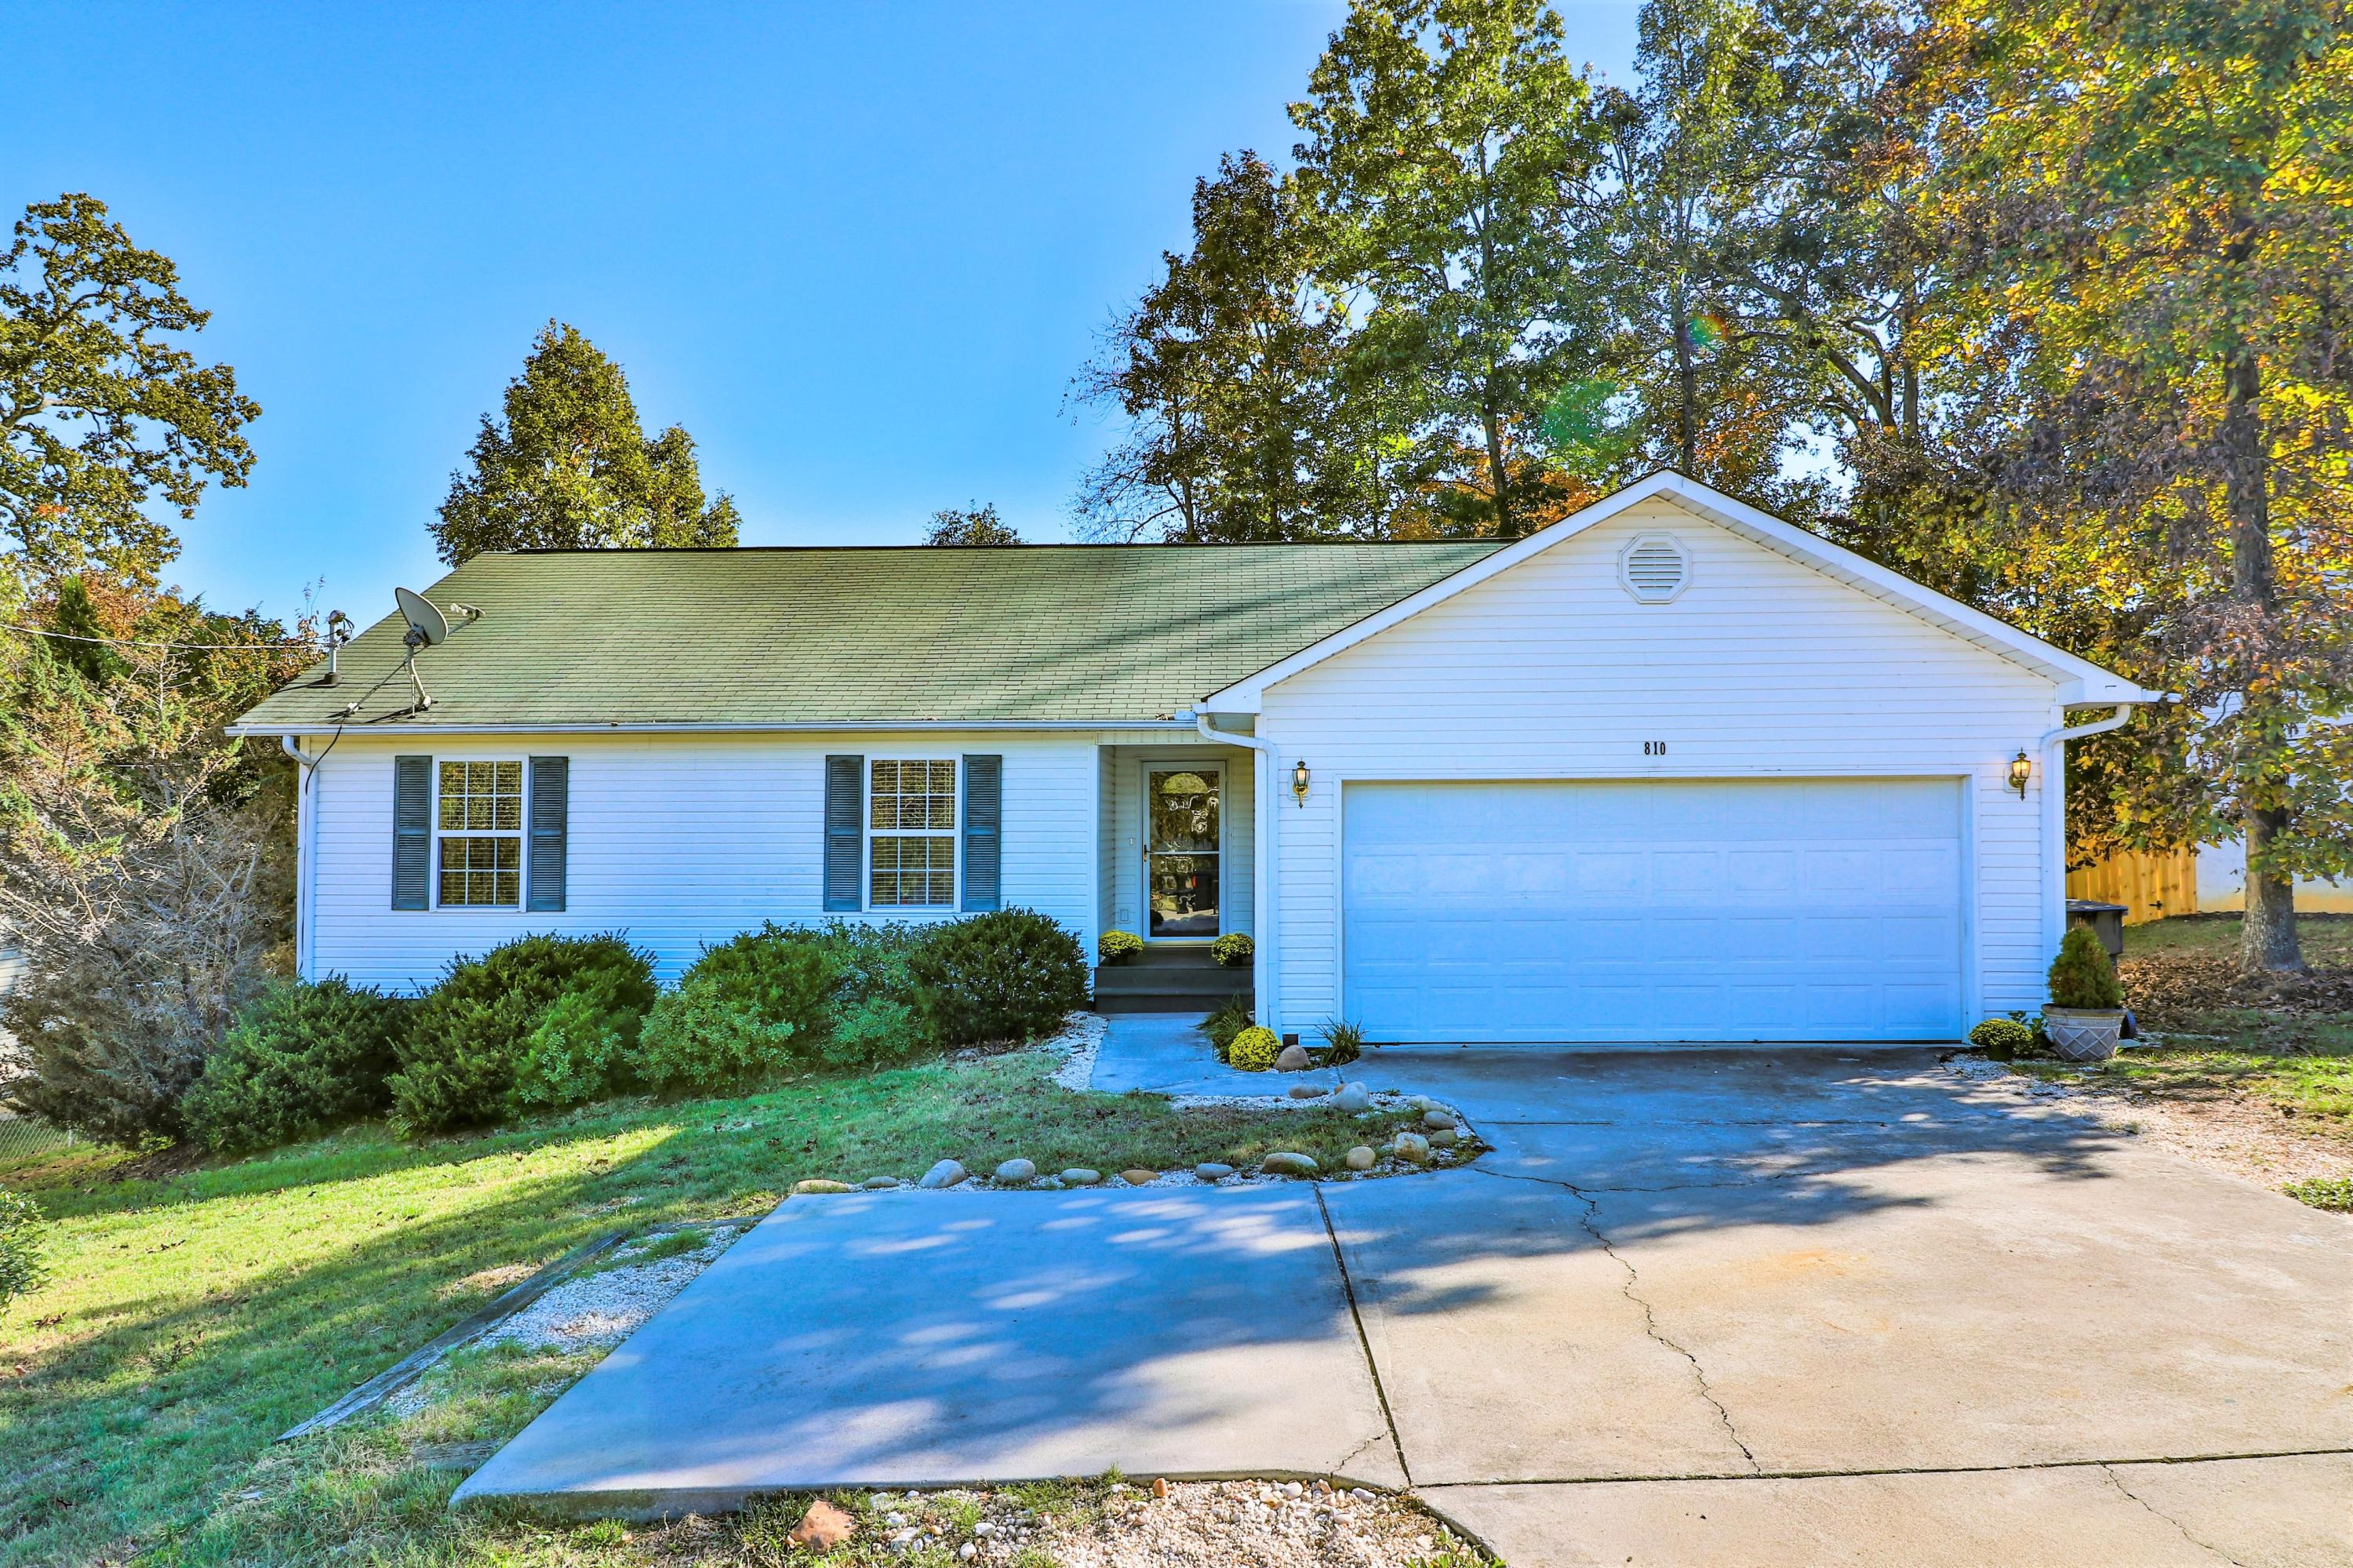 810 Centeroak Drive, Knoxville, Tennessee 37920, 3 Bedrooms Bedrooms, ,2 BathroomsBathrooms,Rental,For Sale,Centeroak,1096413